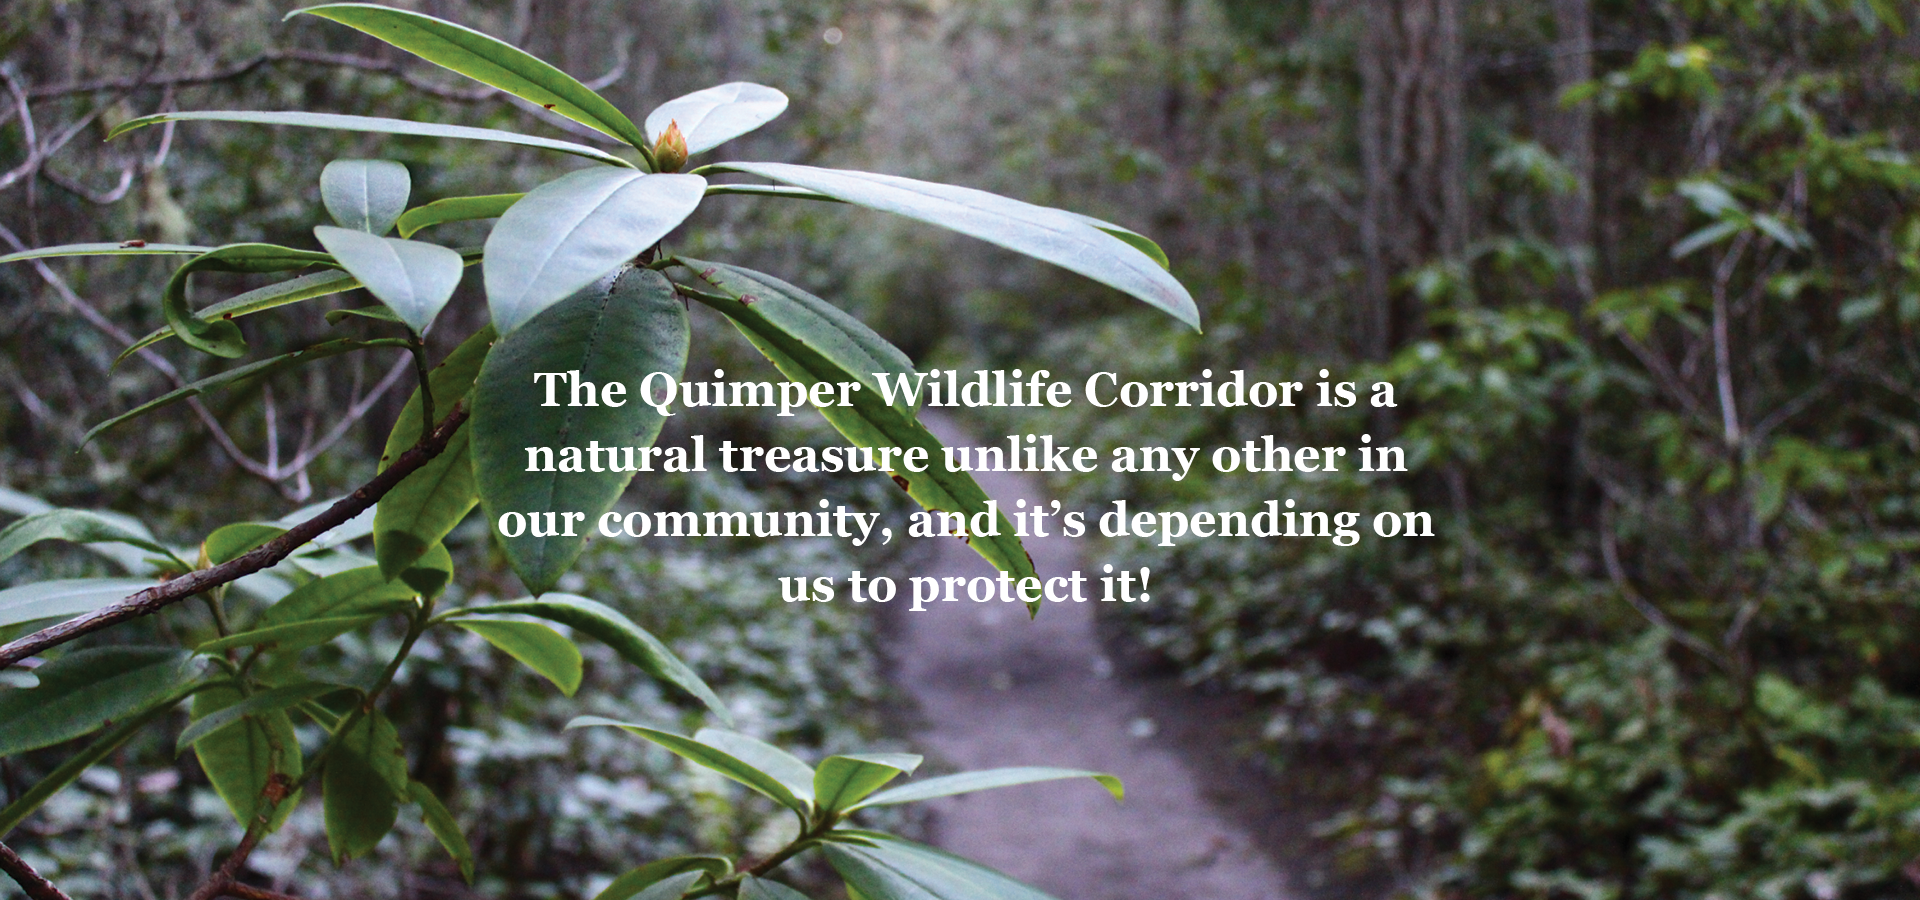 Quimper Wildlife Corridor Trail Image with text overlay that reads: The Quimper Wildlife Corridor is a natural treasure unlike any other in our community and it's depending upon us to protect it!